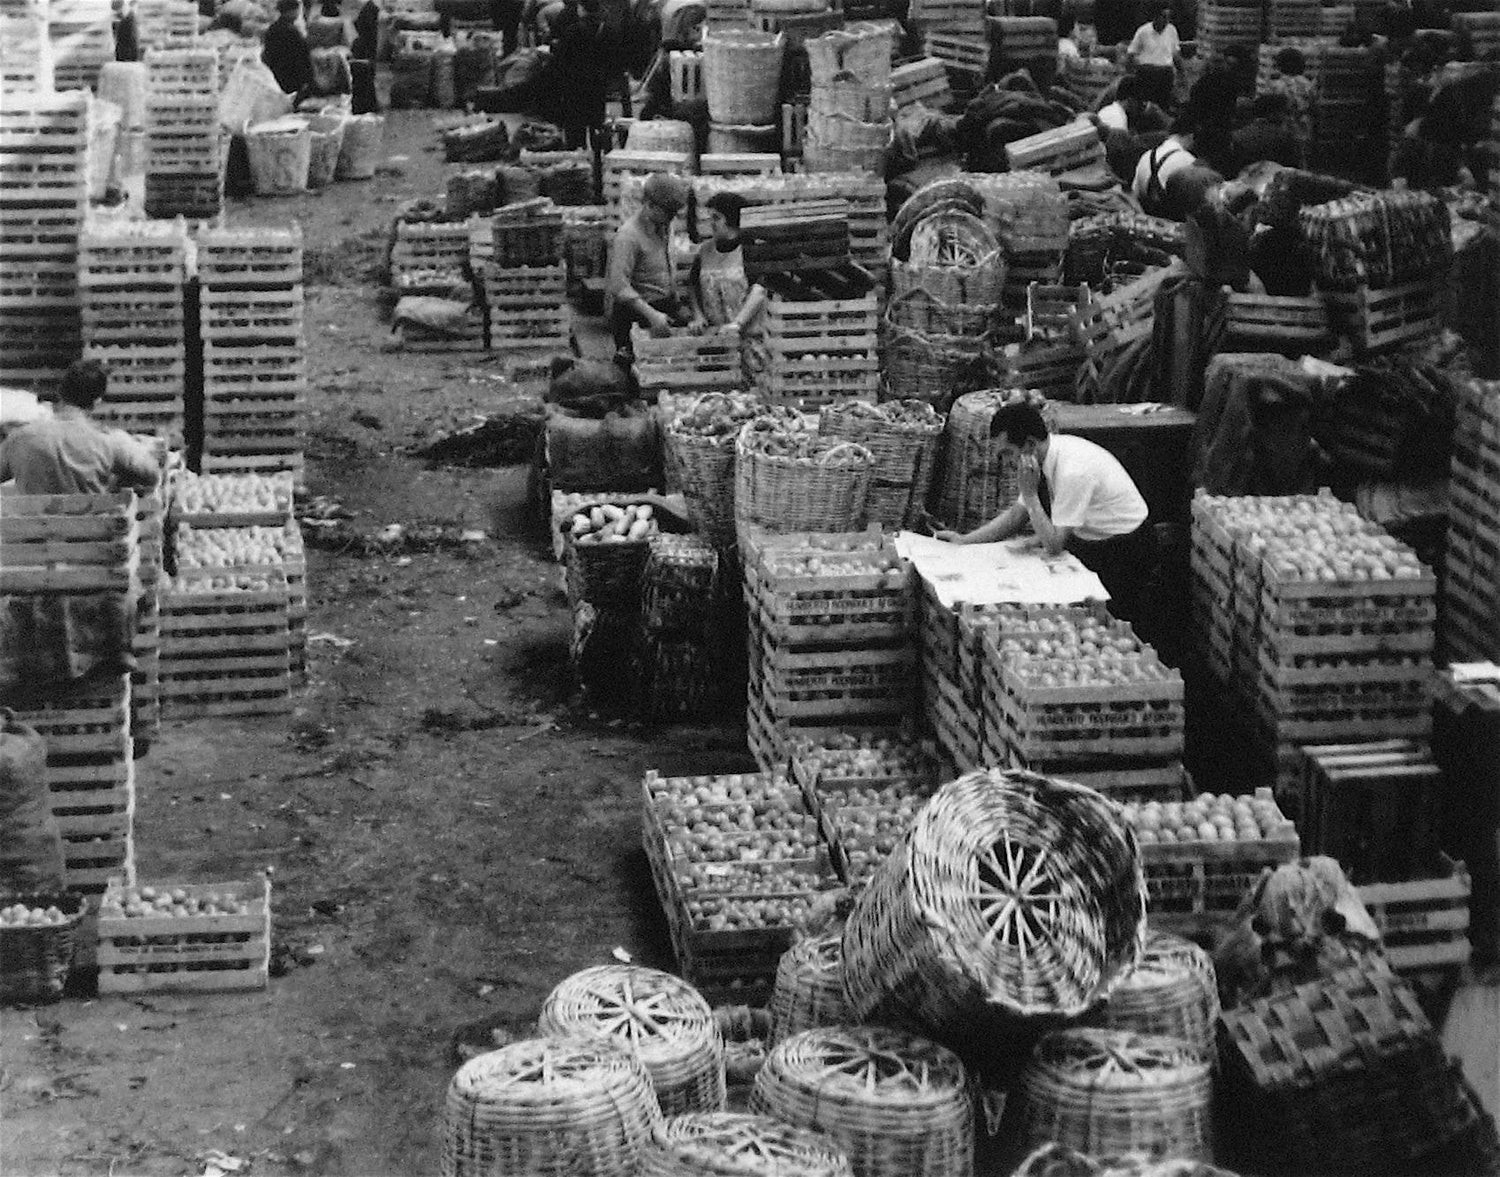 Roz joseph lisbon portugal marketplace black and white photograph 1960s photograph for sale at 1stdibs